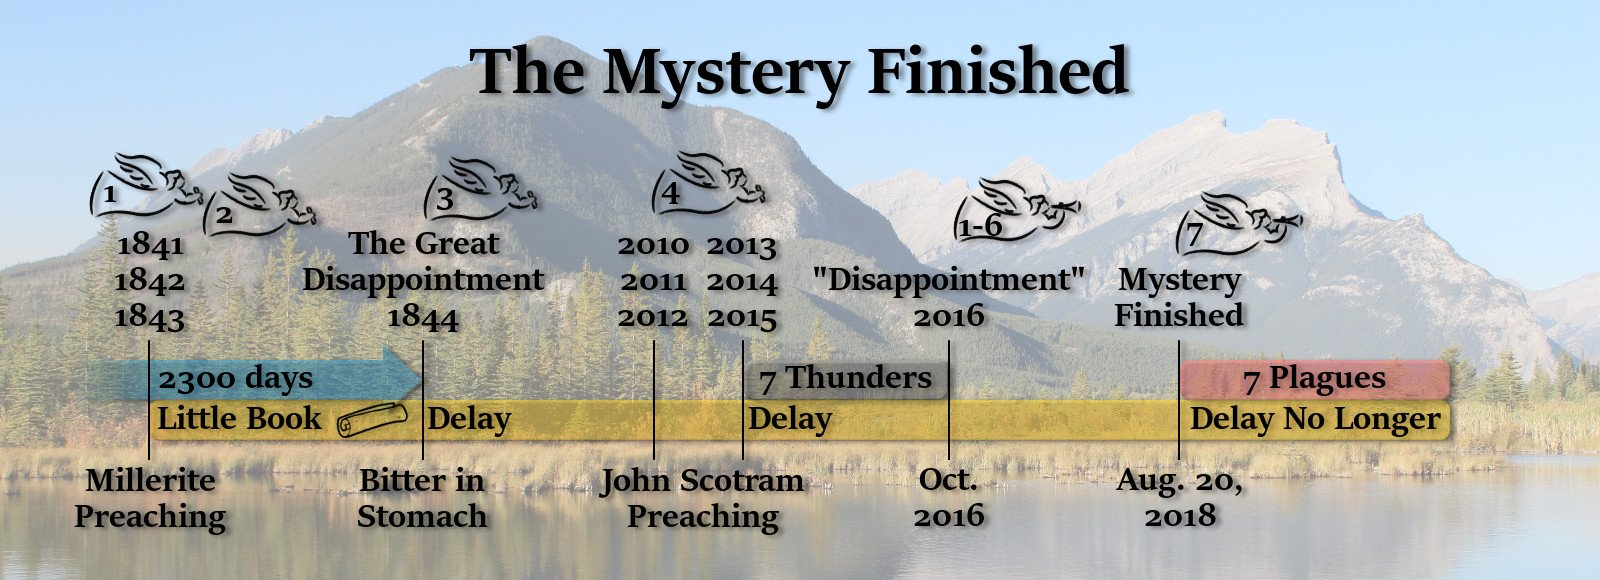 The Finishing of the Mystery